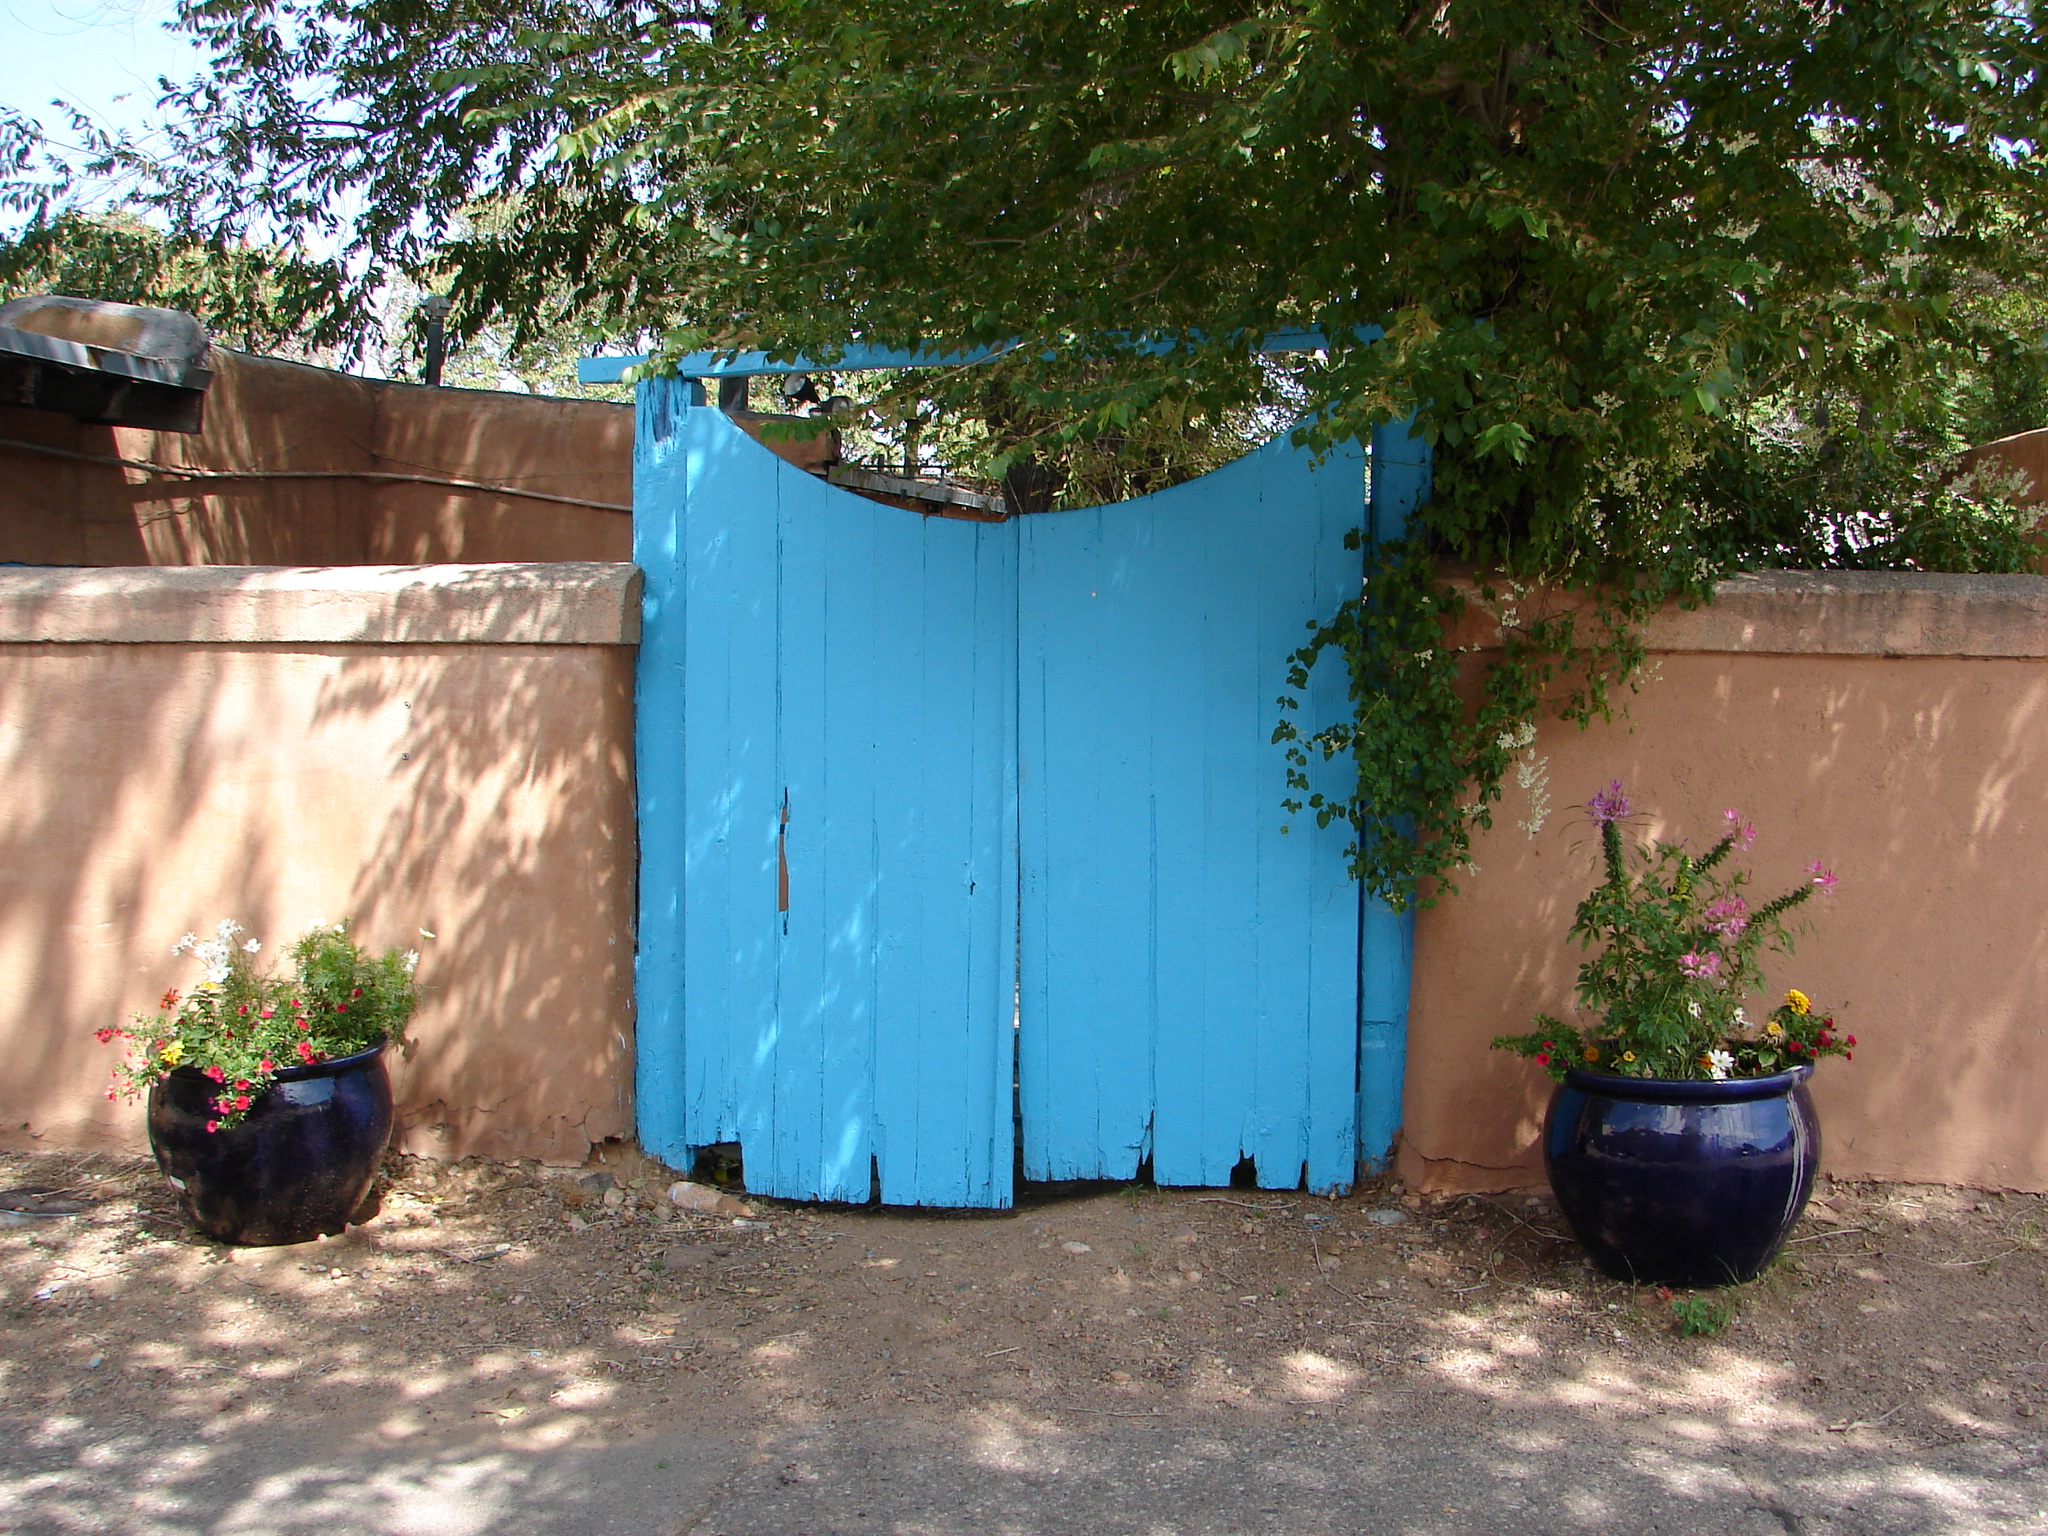 Blue Gate in Santa Fe NM USA Desktop and mobile wallpaper Wallippo 2048x1536